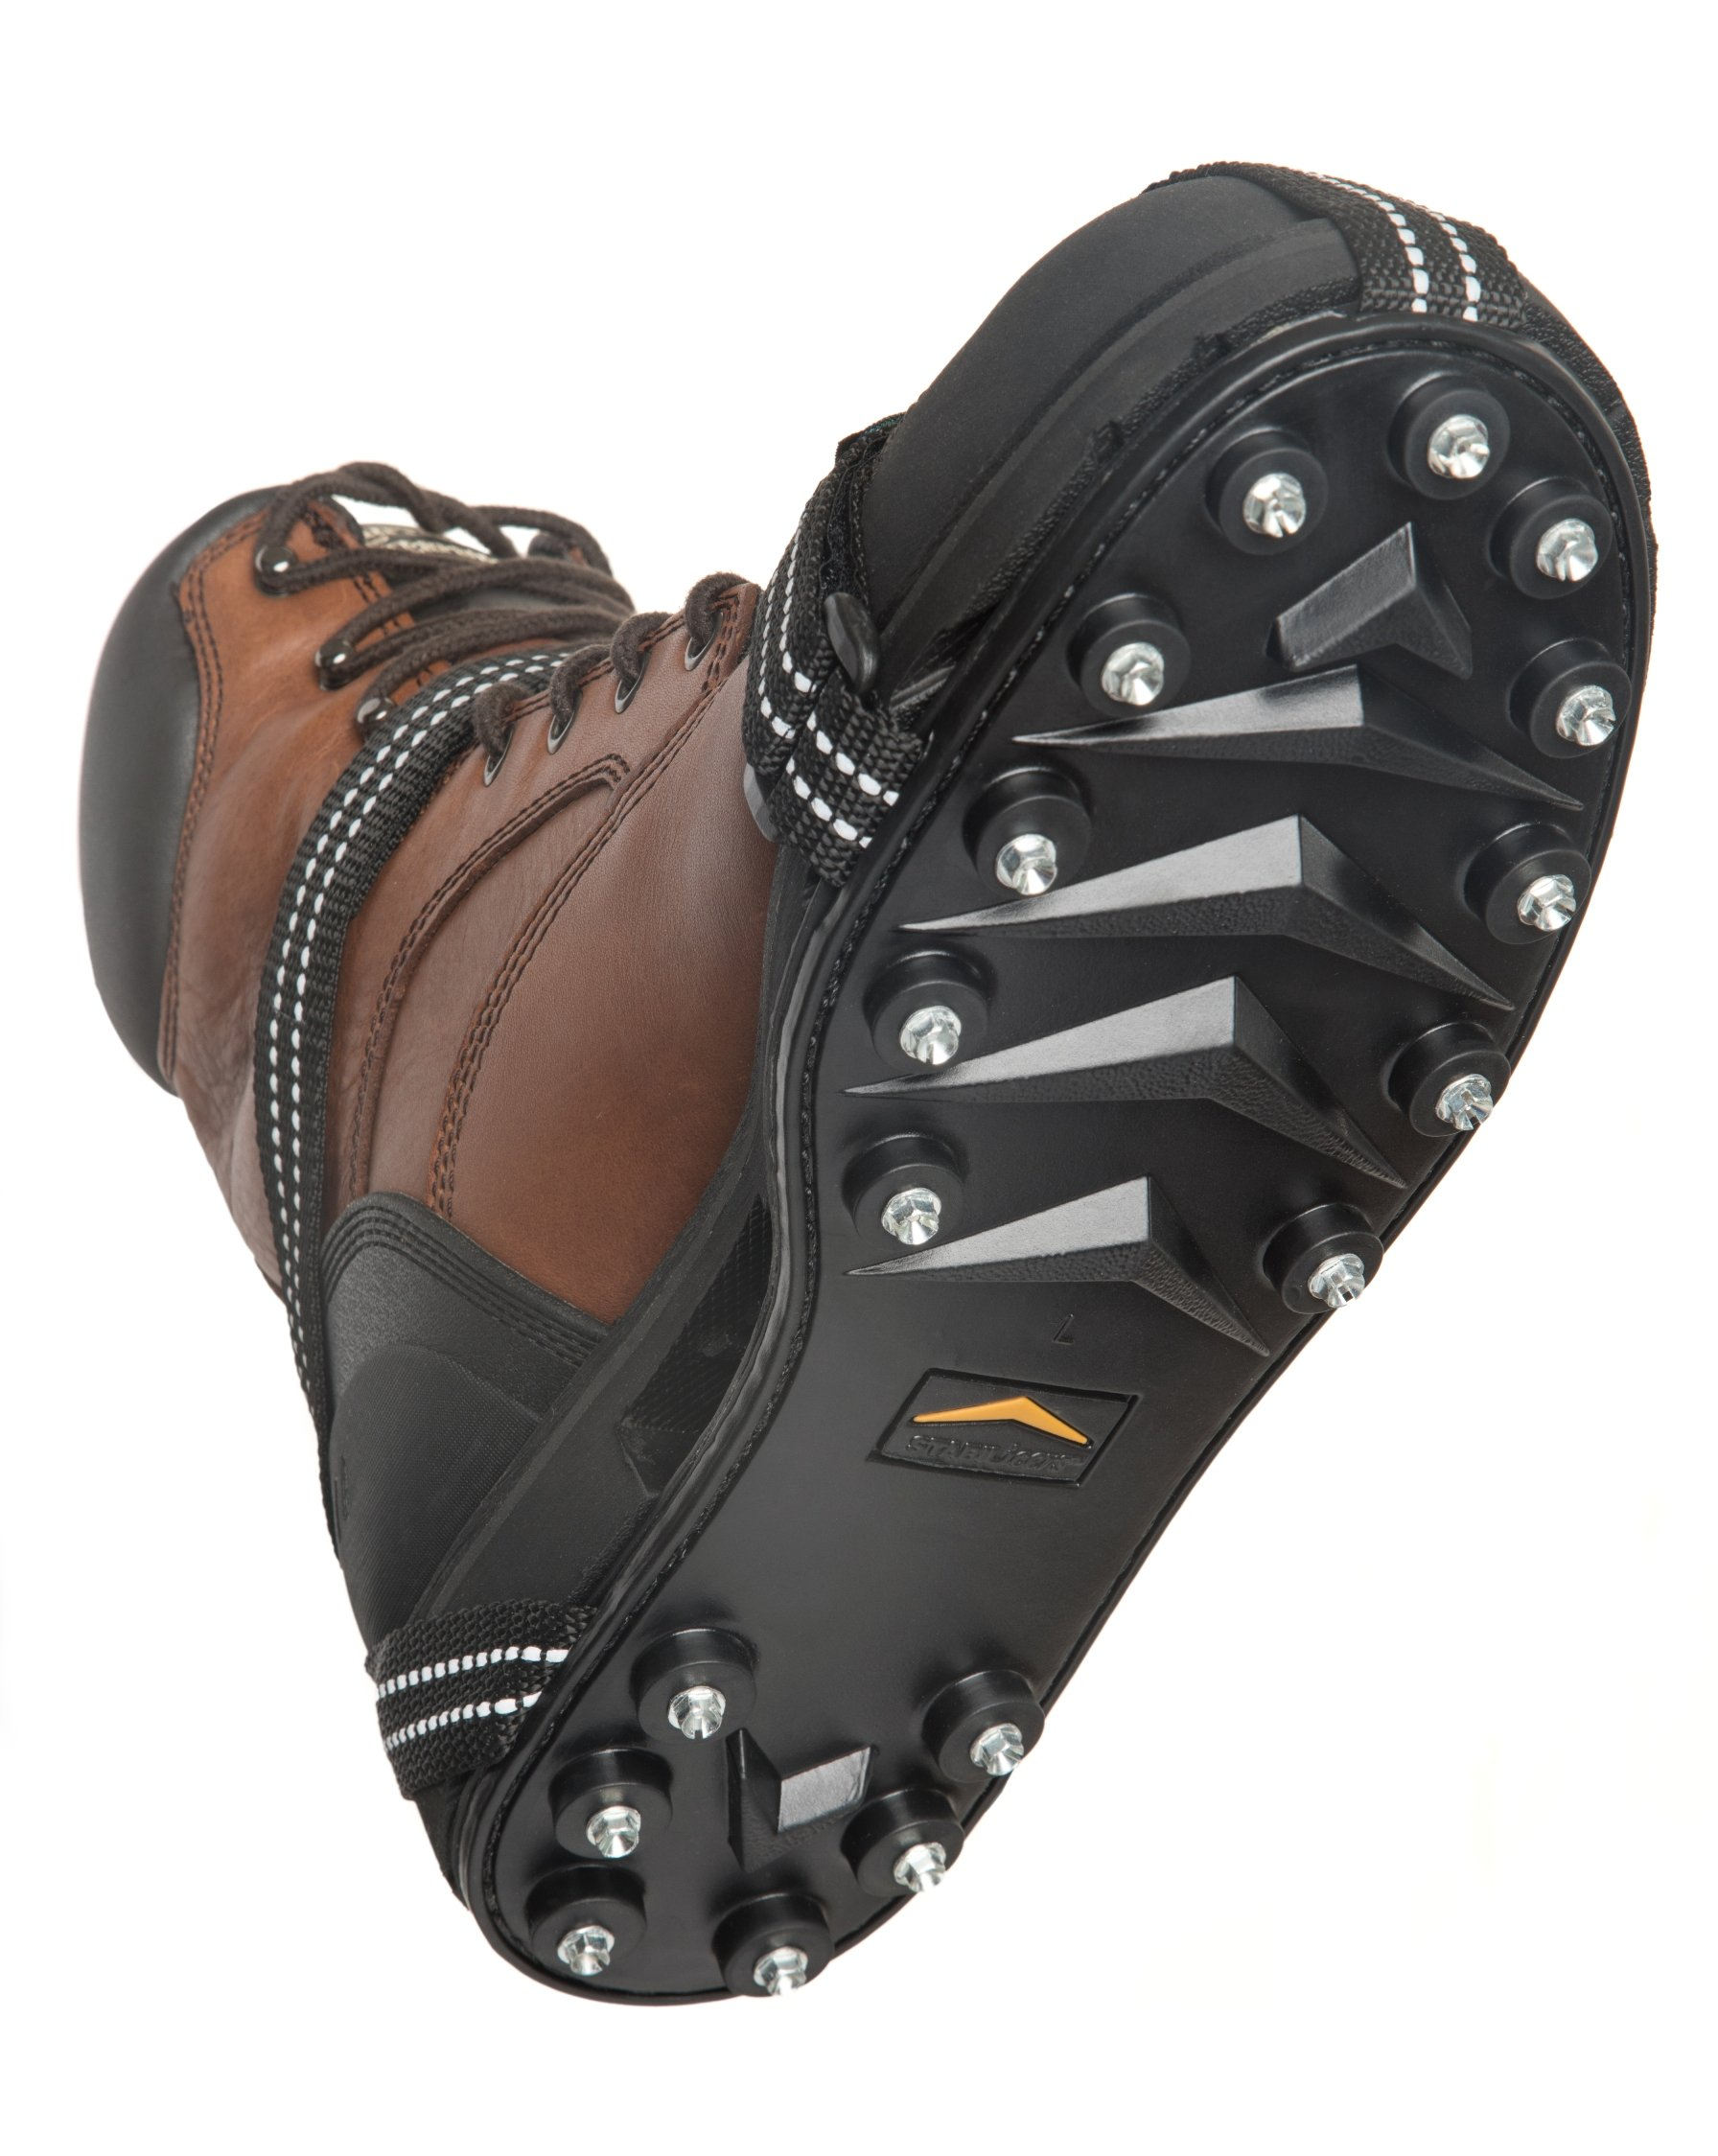 STABILicers Maxx Original Heavy Duty Ice Traction Cleat for Snow and Ice - Medium - Traction cleats for Boots and Shoe Ice Cleats